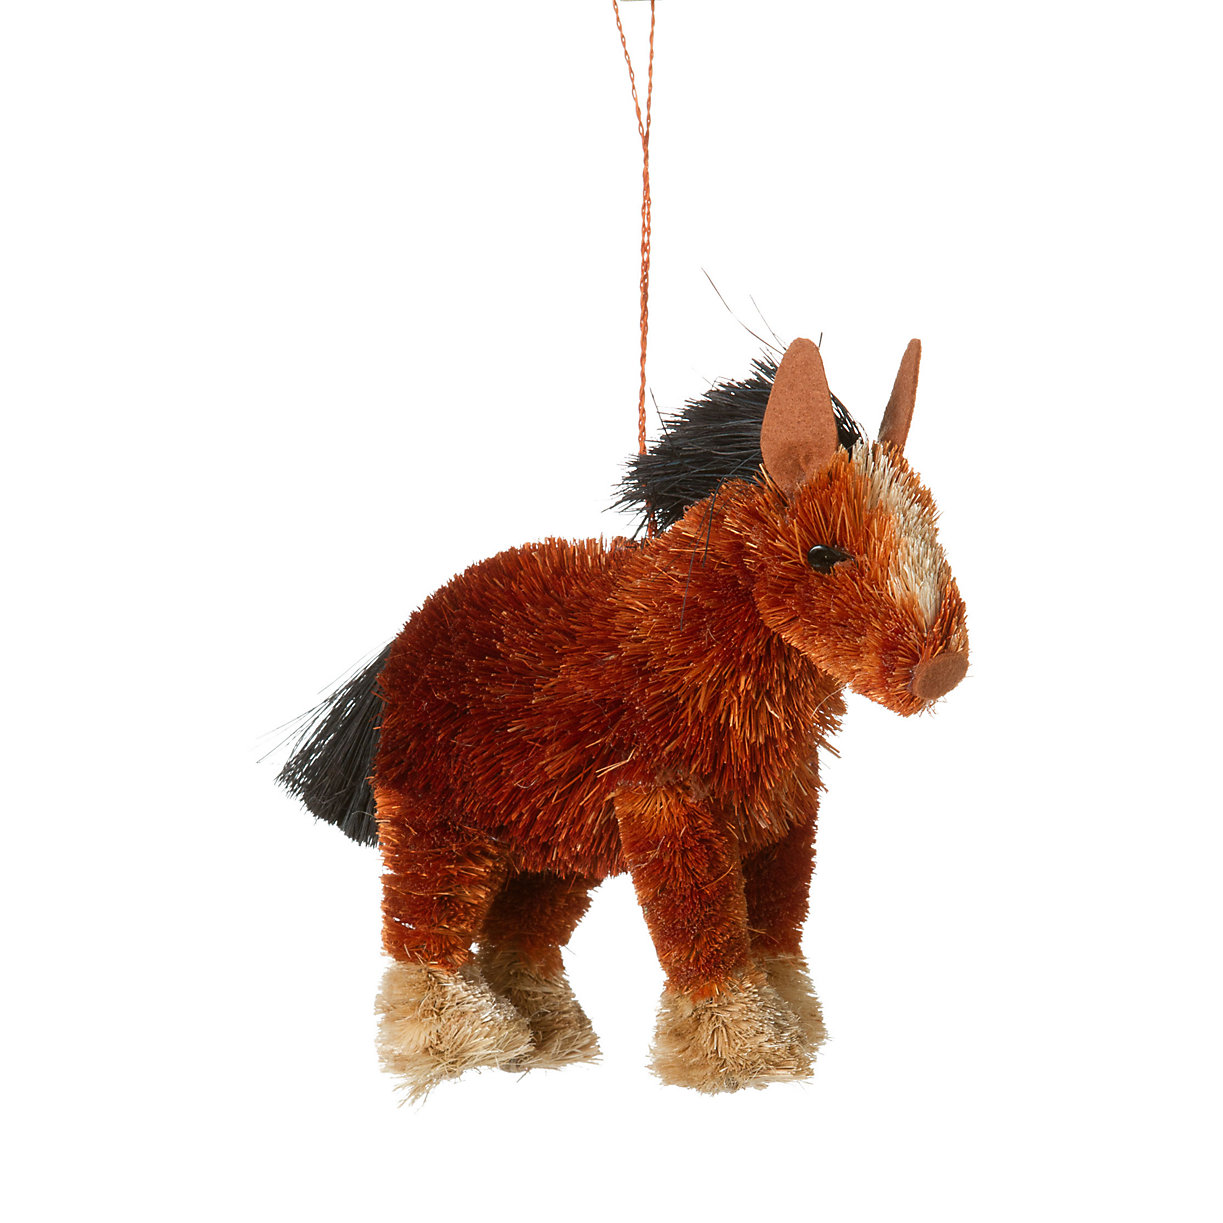 Bristle brush ornaments - Bristle Brush Clydesdale Ornament Loading Zoom